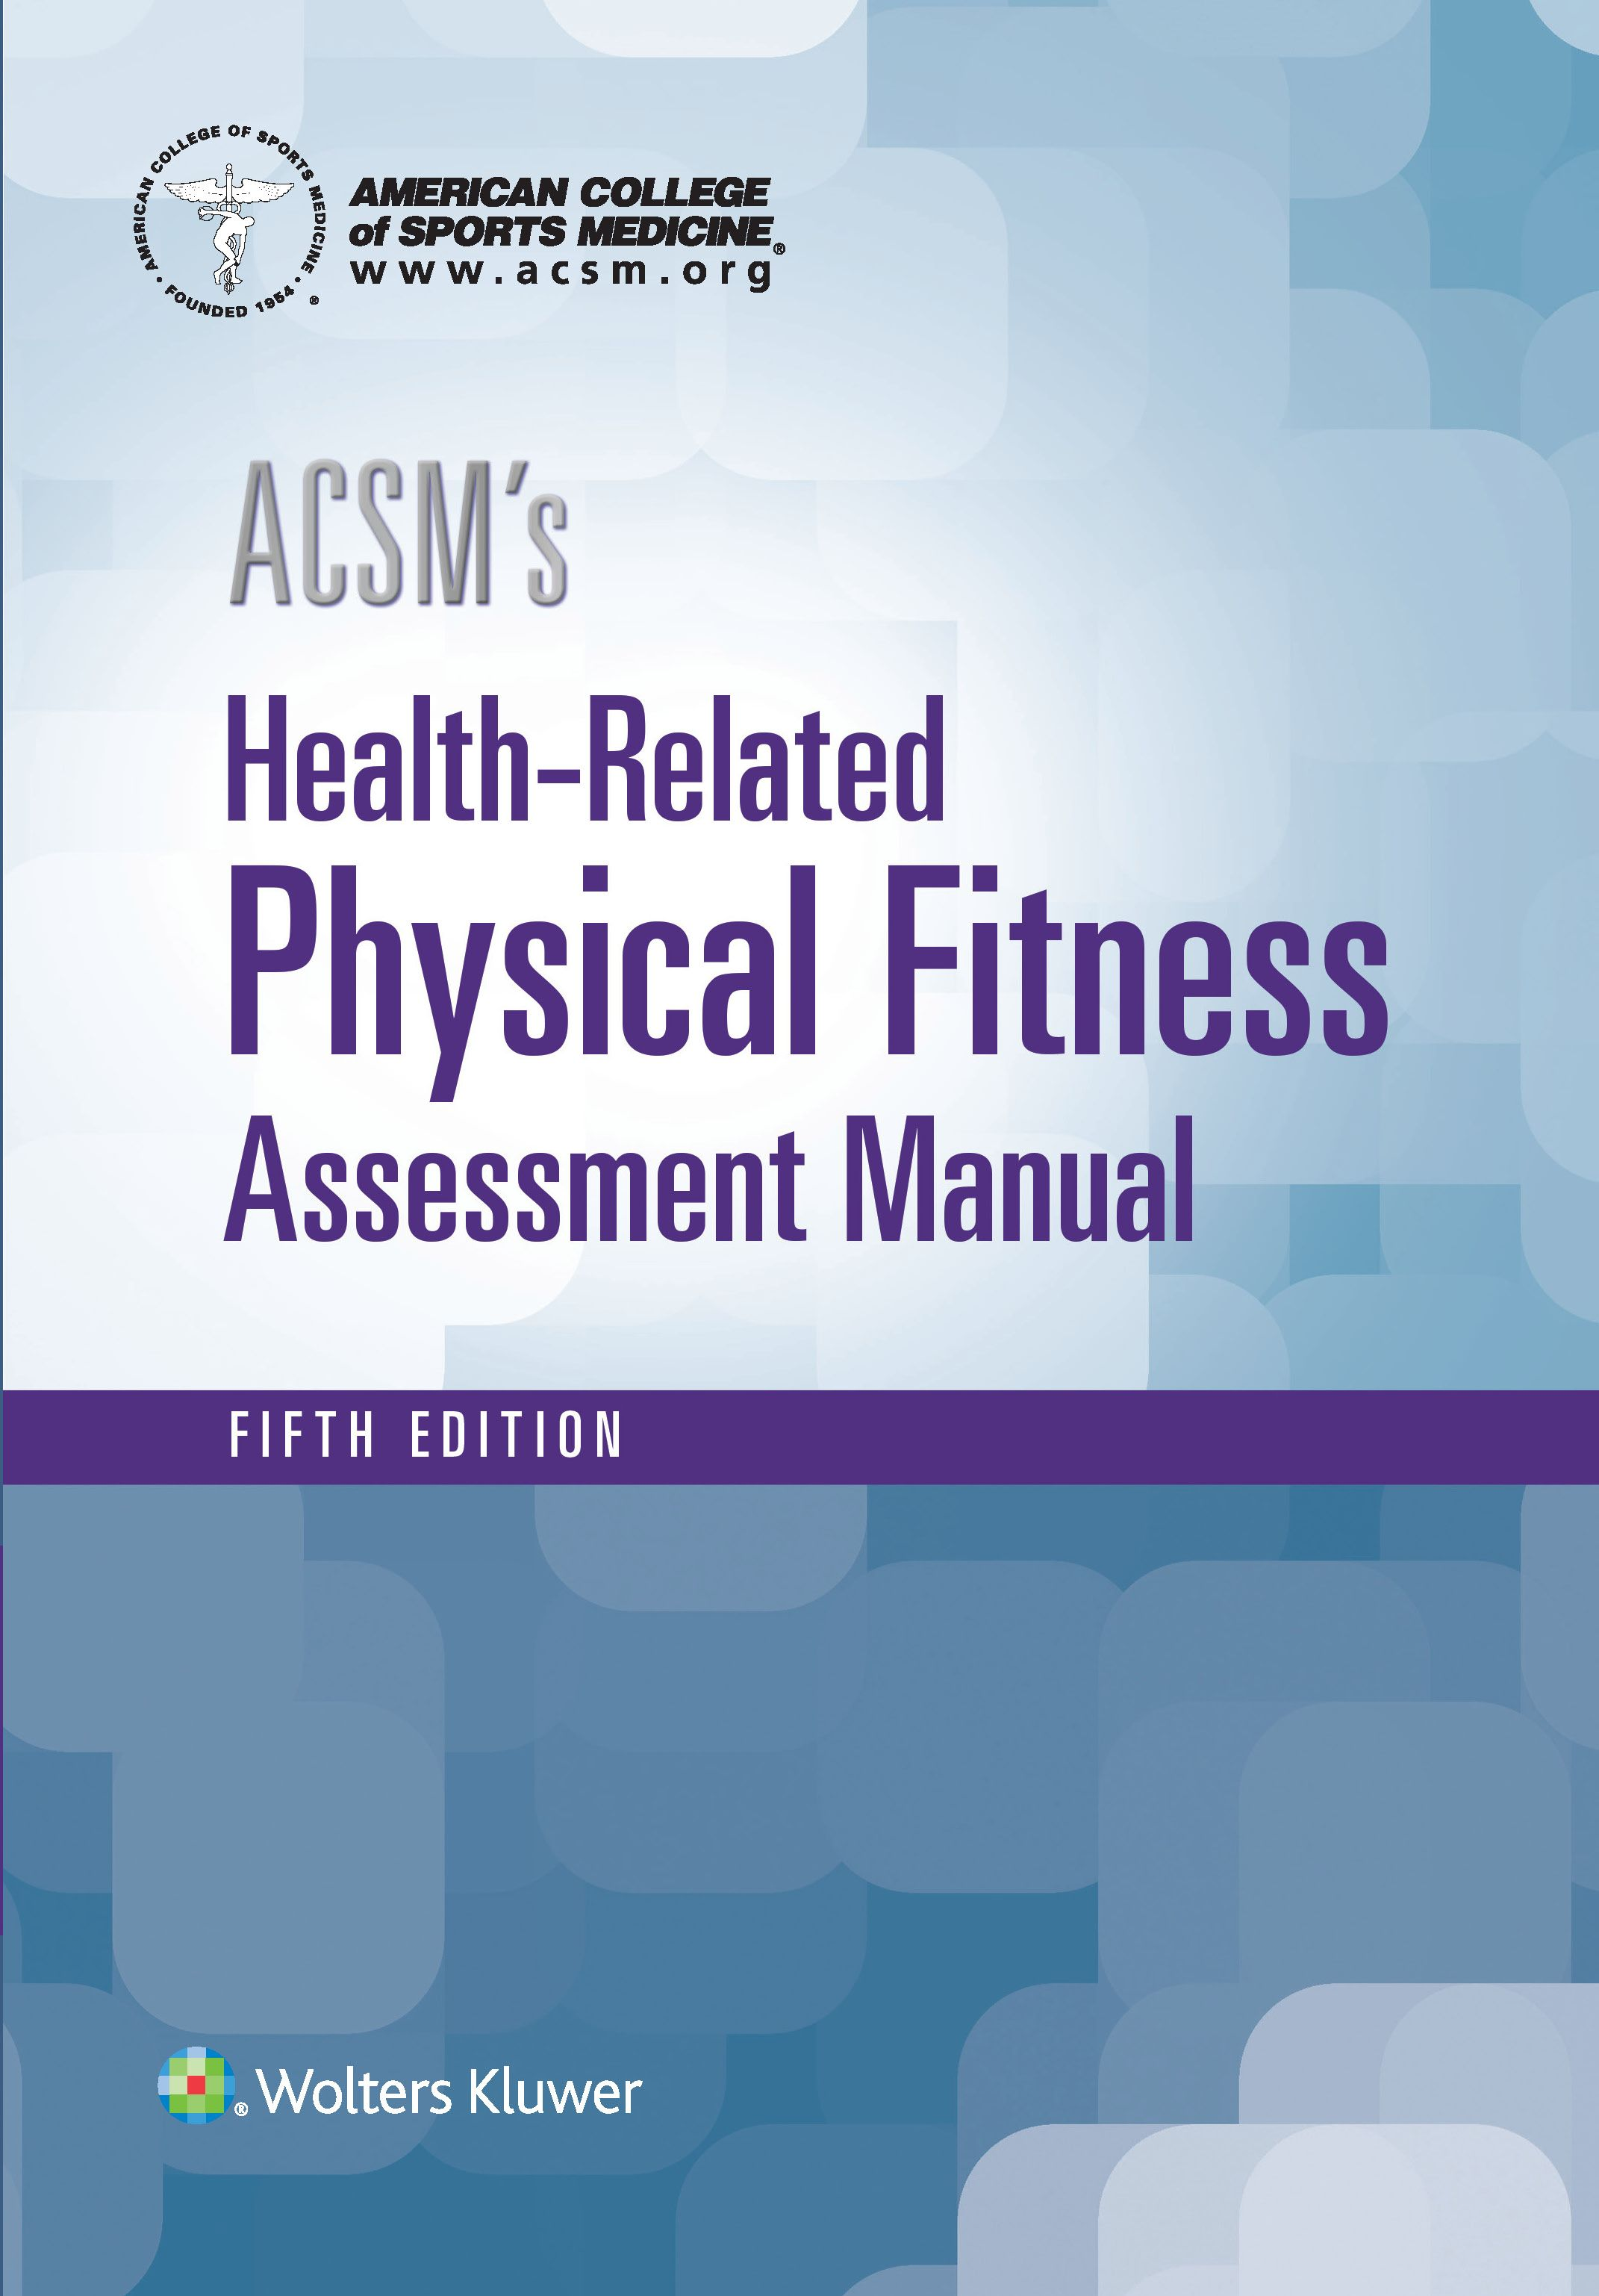 HealthRelated Cover Sports medicine, Physical fitness, Acsm